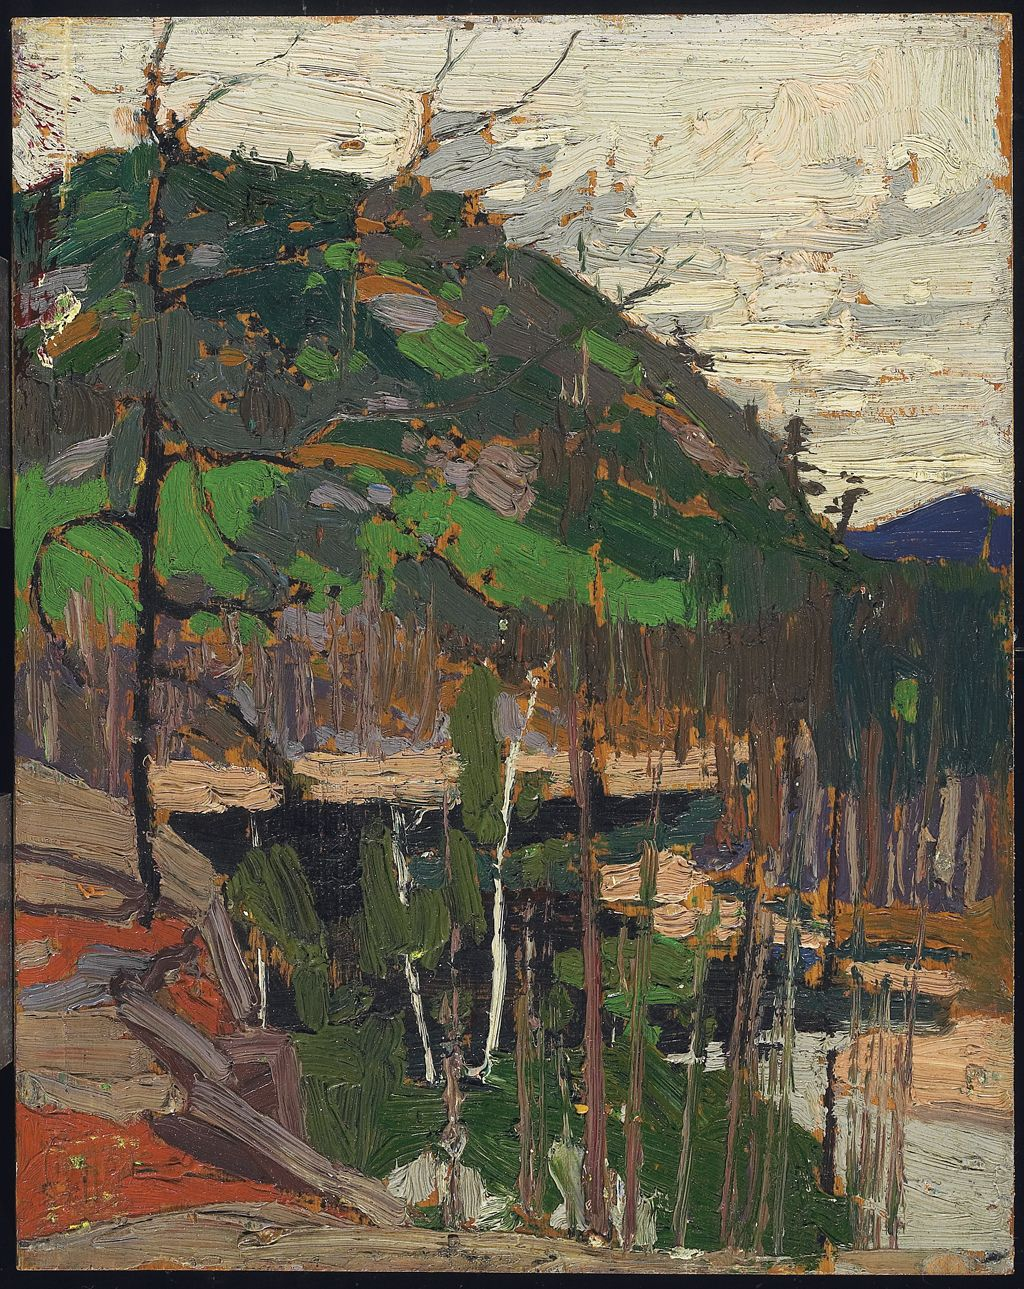 Thomson, Tom, Canadian, (1877 - 1917), Rounded Hill and River, 1916